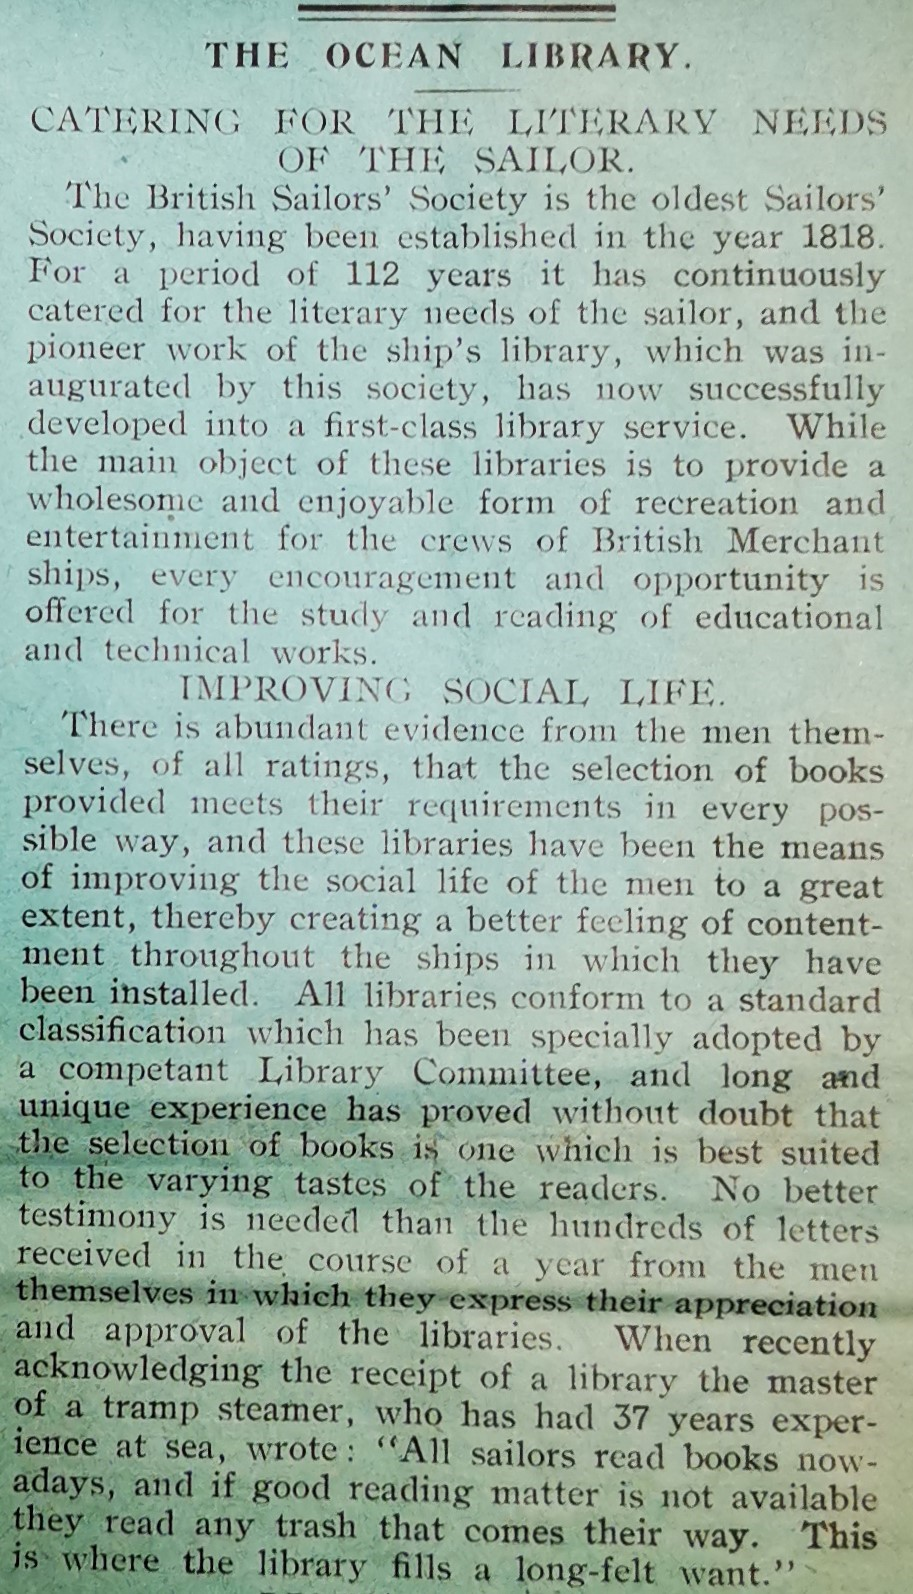 Article from the September 1931 issue explaining the benefits of the Ocean Library